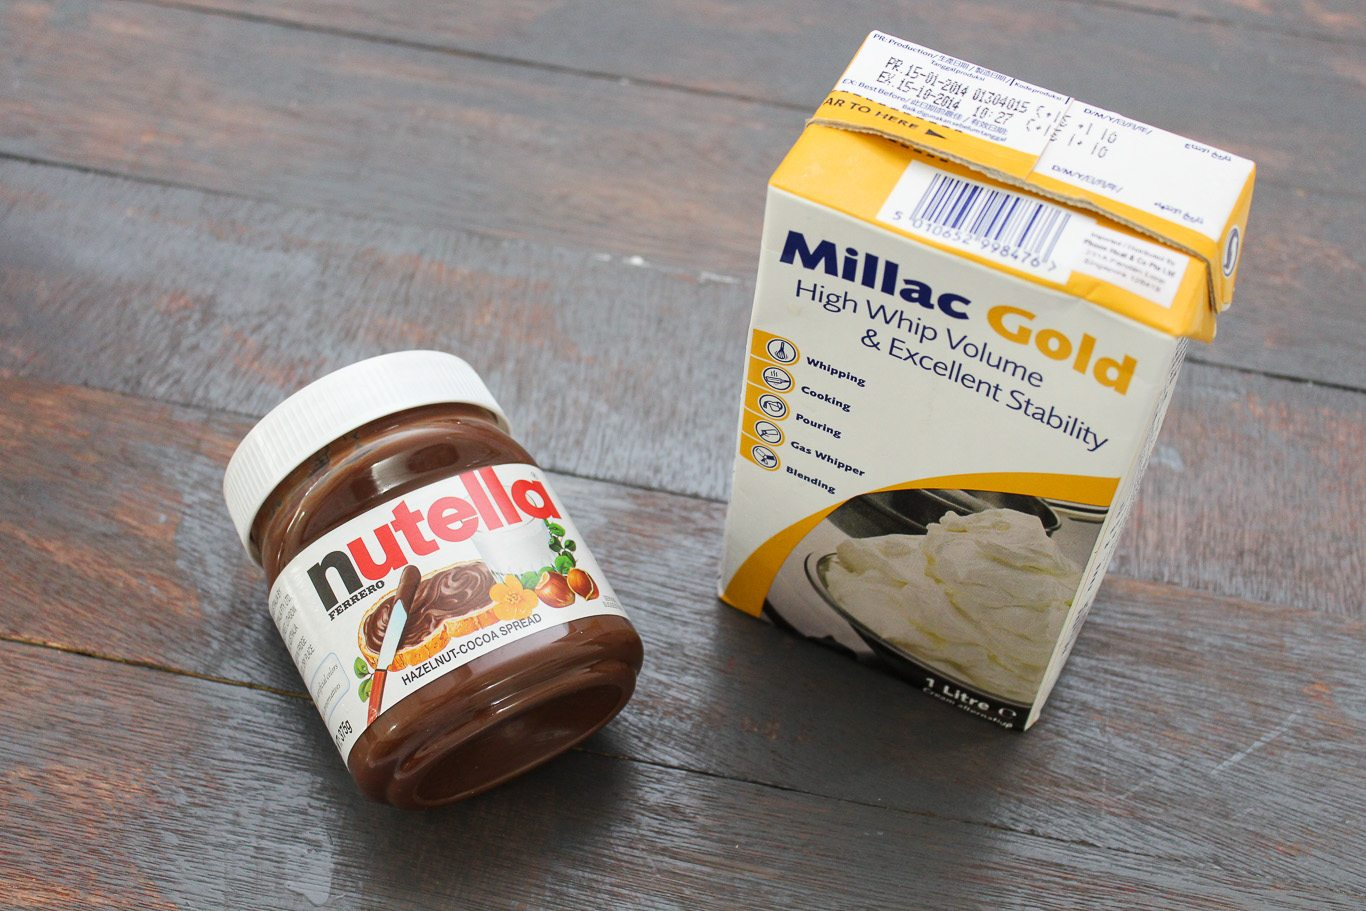 Two Ingredient Nutella Mousse